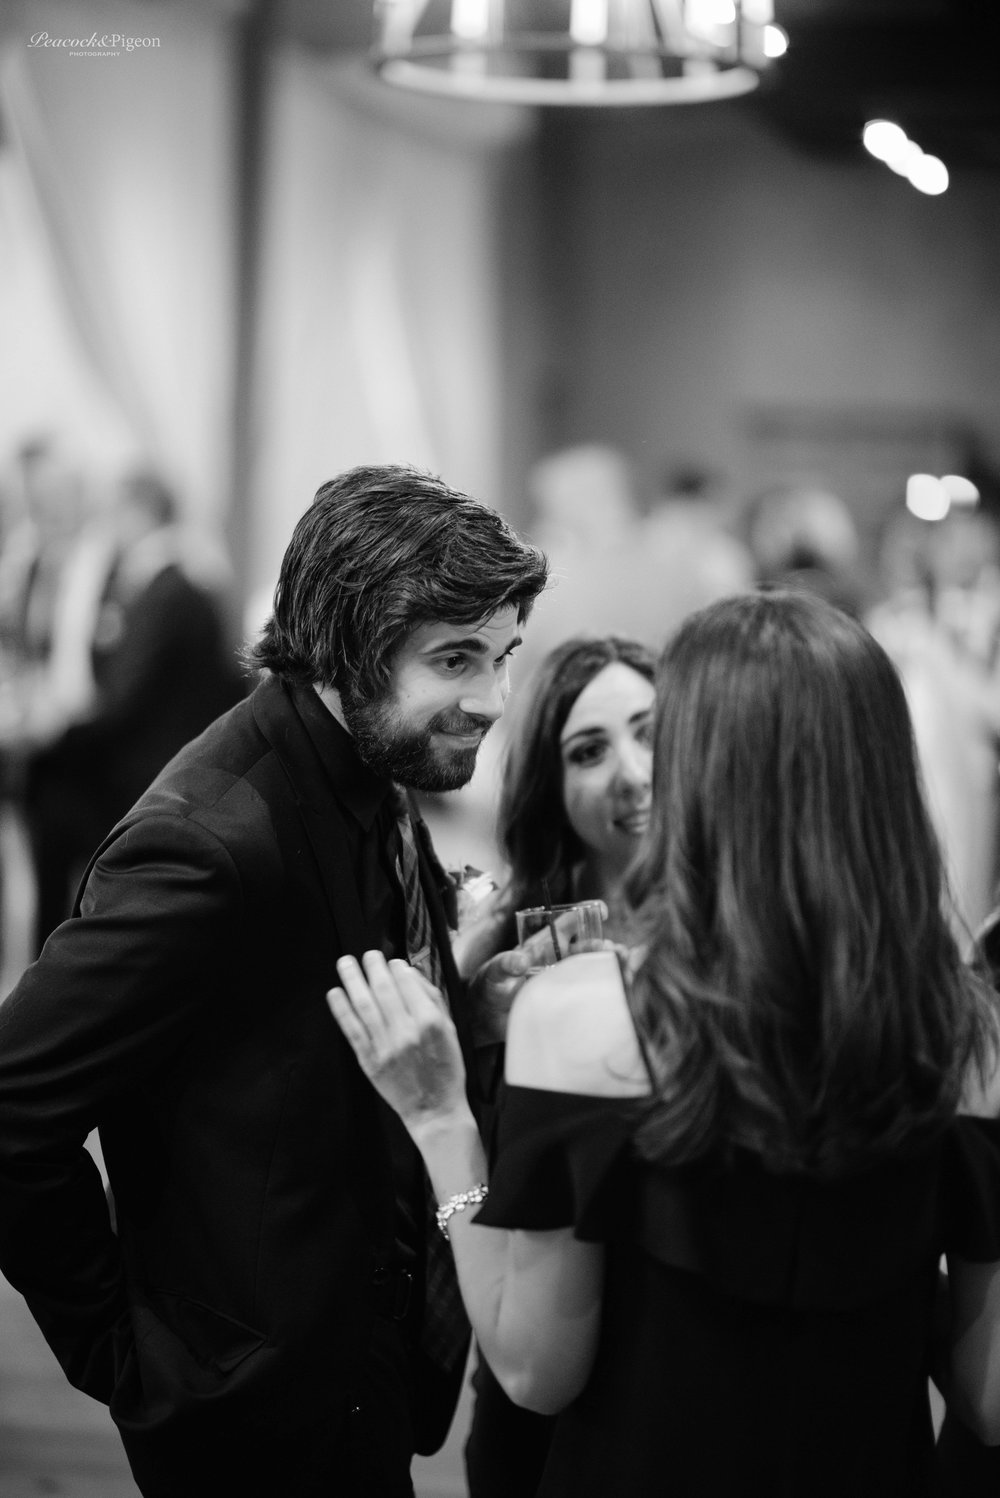 Callum_and_Sara's_Wedding_at_the_Cork_Factory_Hotel_in_Lancaster-Part_Six_The_Reception_and_Dinner_Black_and_White_Watermarked-79.jpg